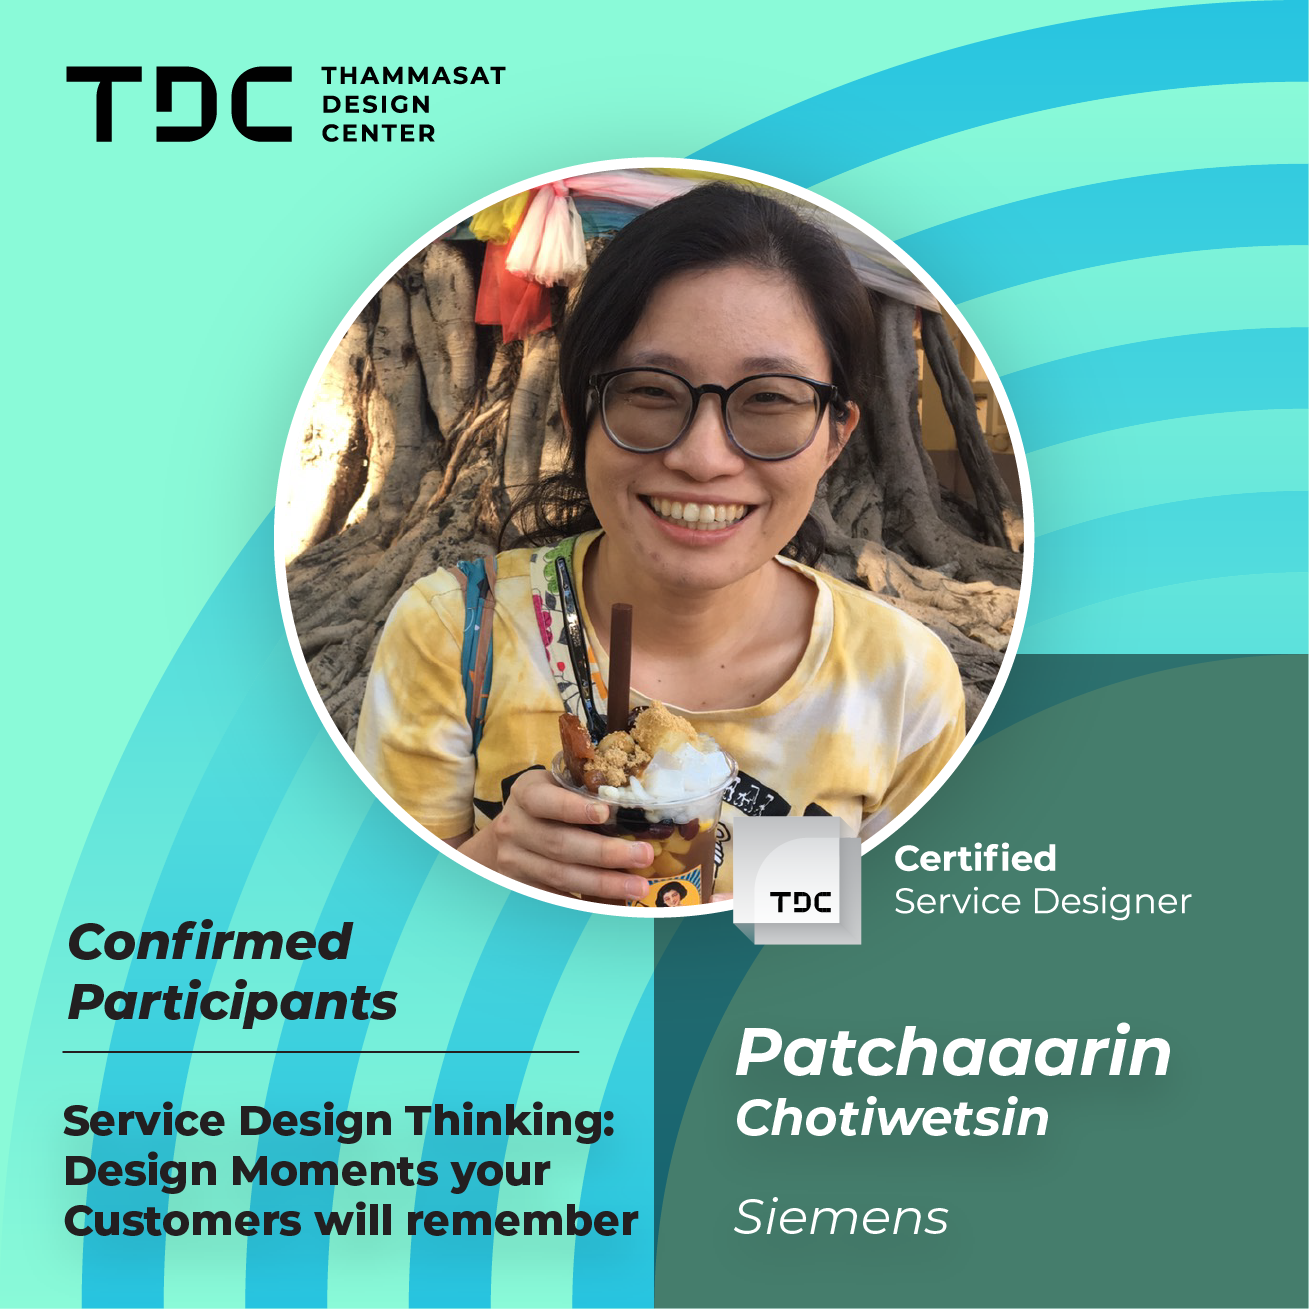 TDC Service Design [1] - Confirmed Participants-05